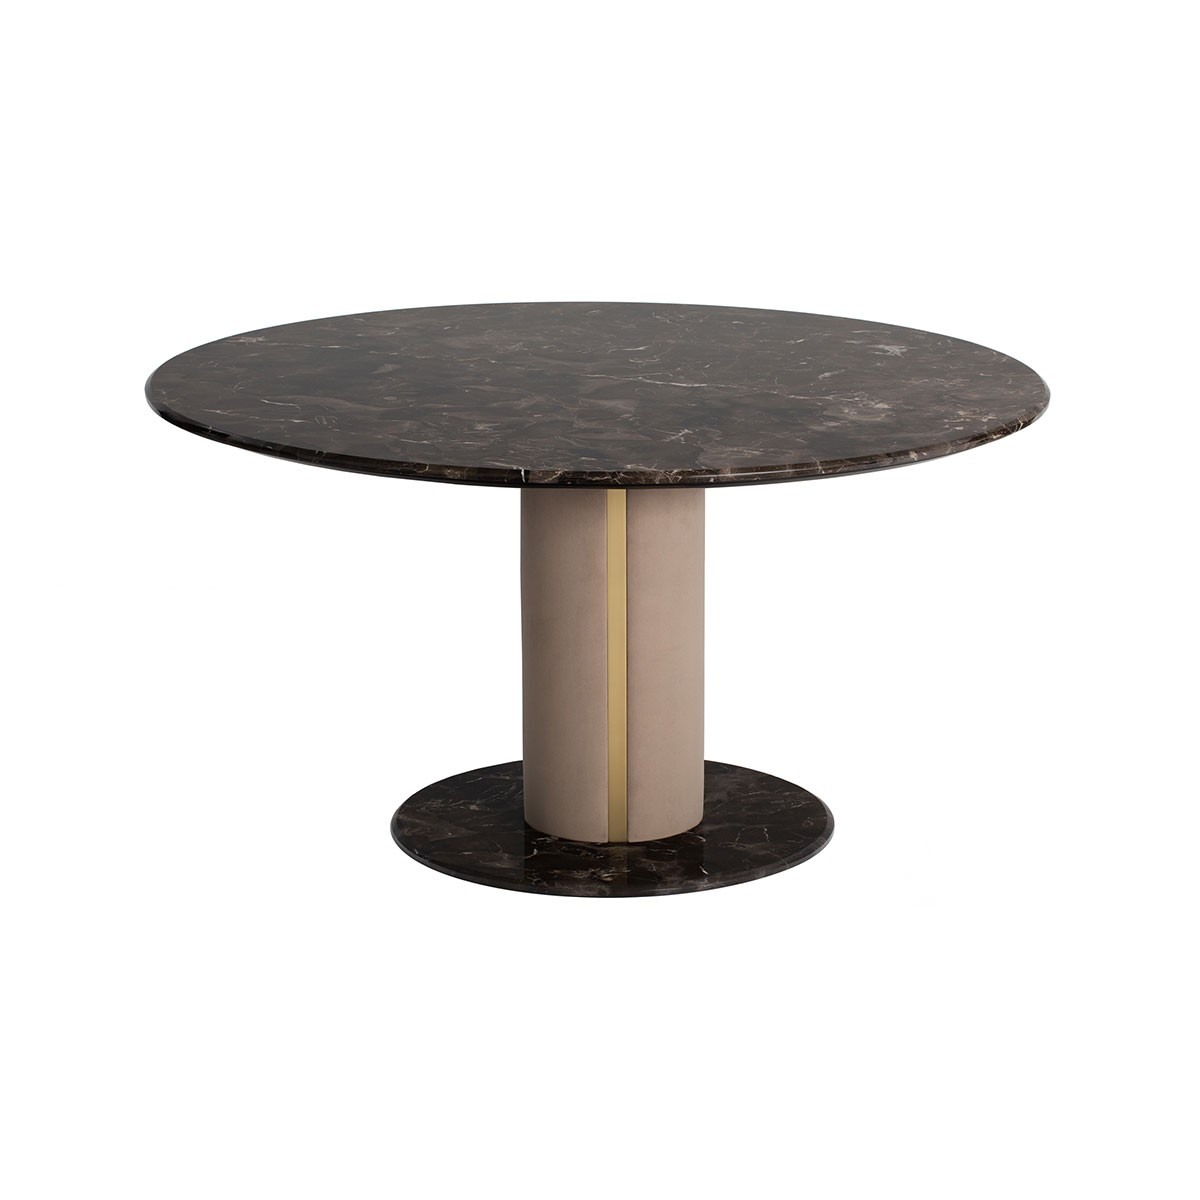 The Ludo Dining Table